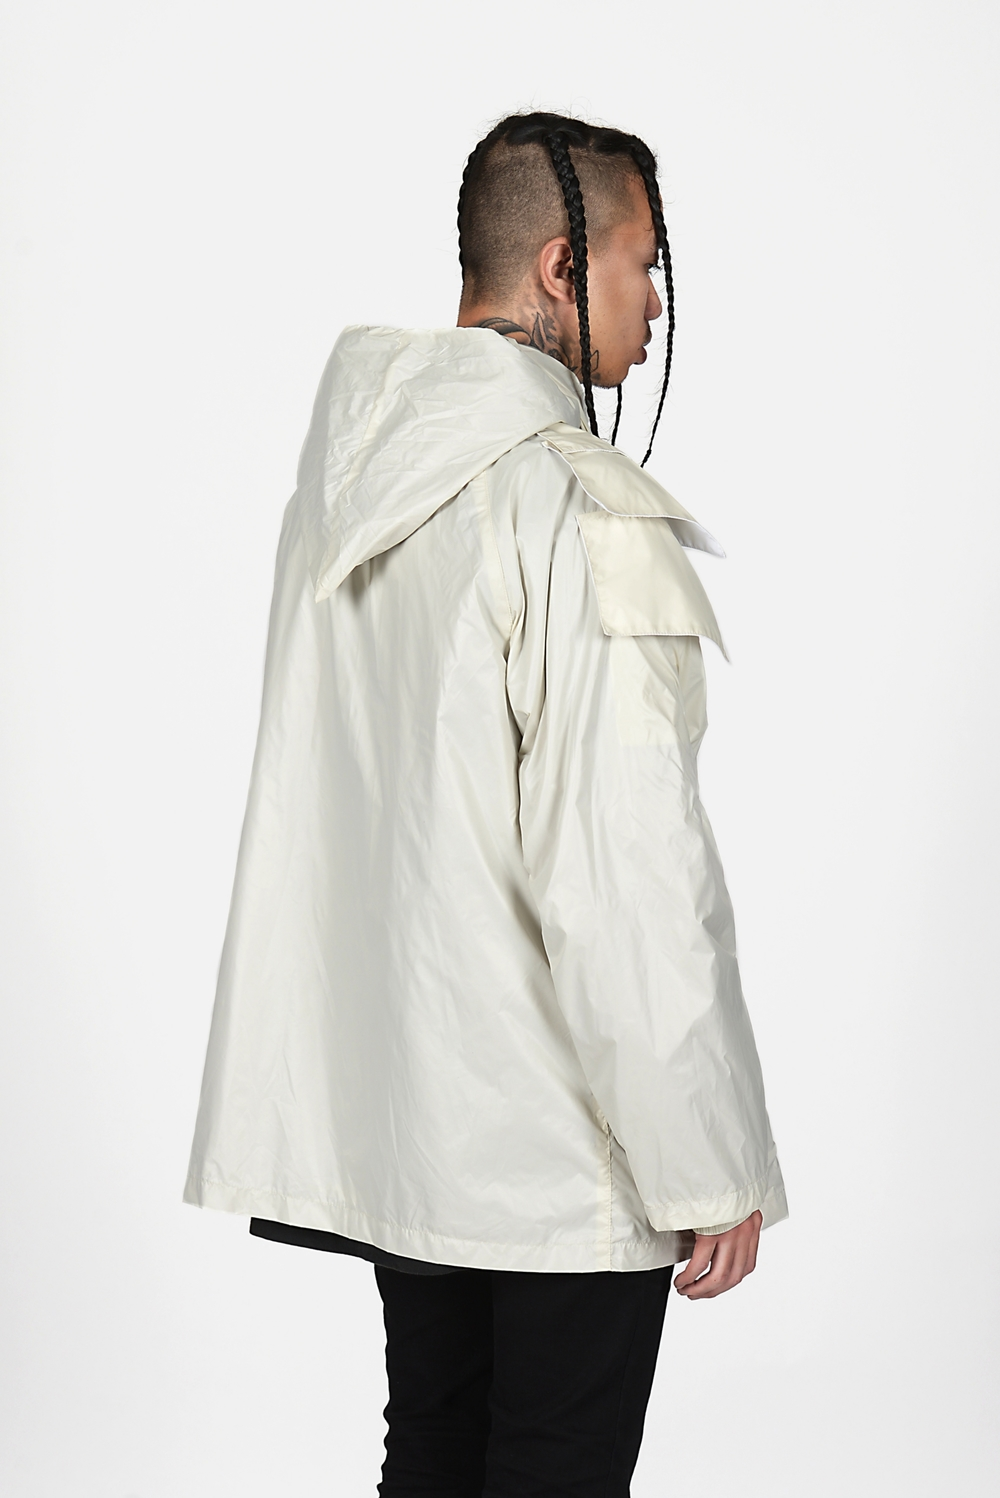 06 Heightened Sense white rain coat.jpg